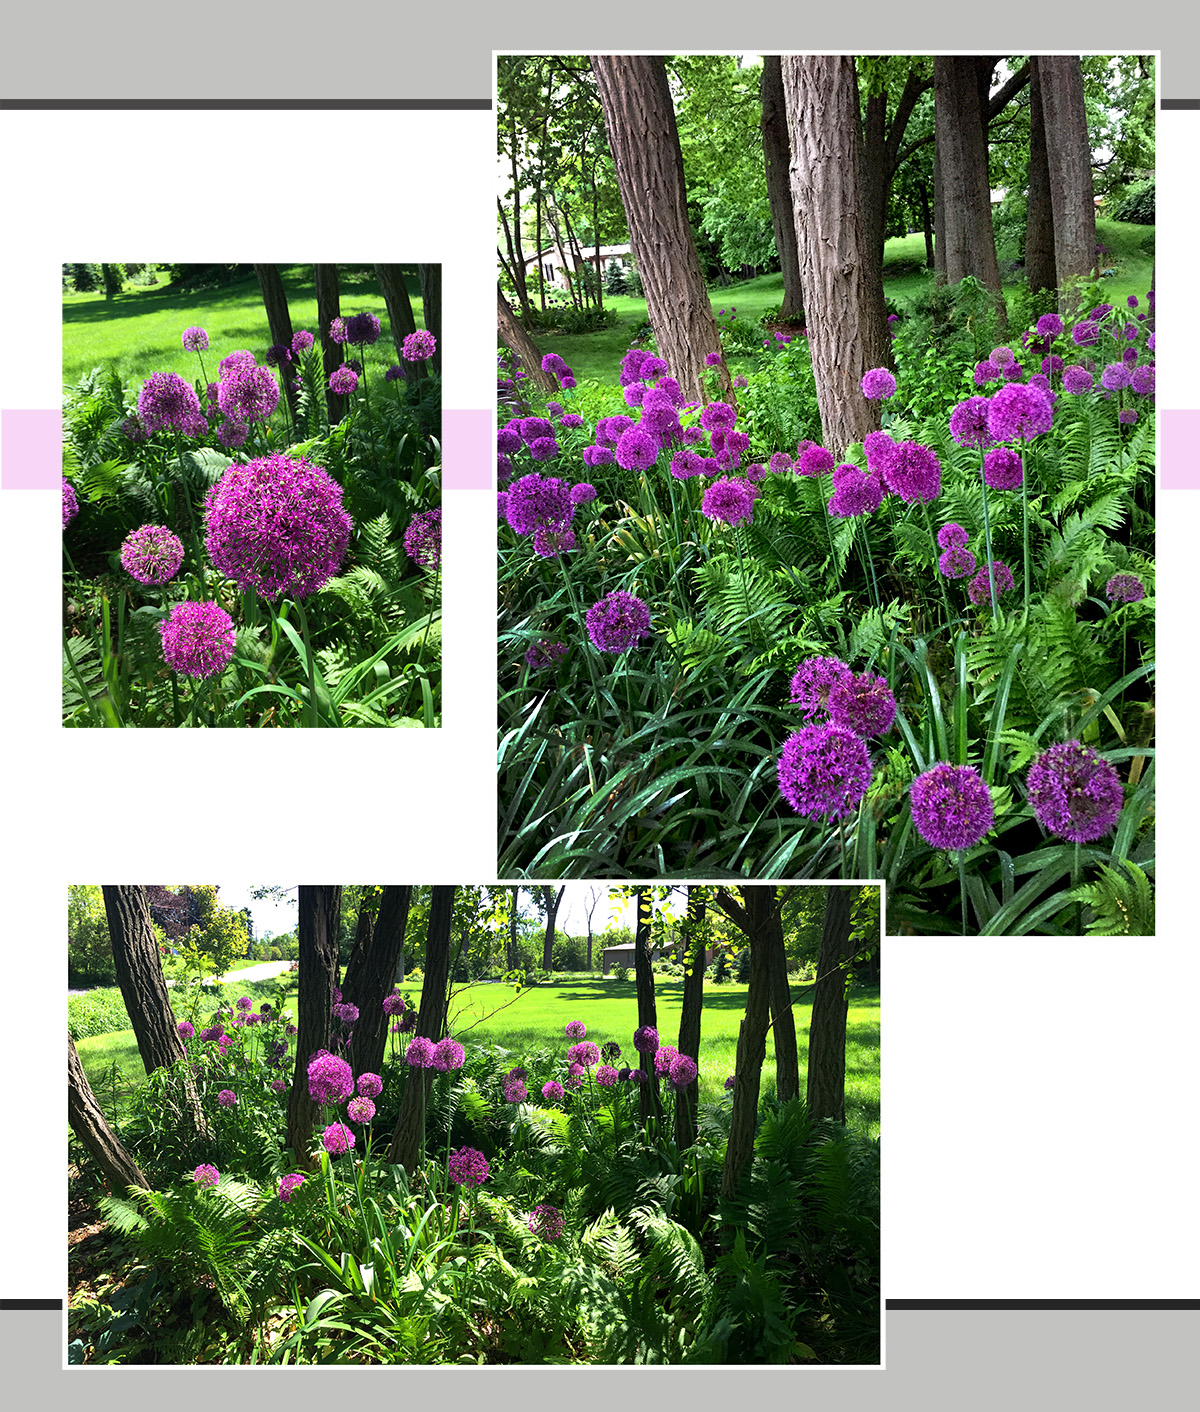 The magical allium and fern garden close to my house . . .